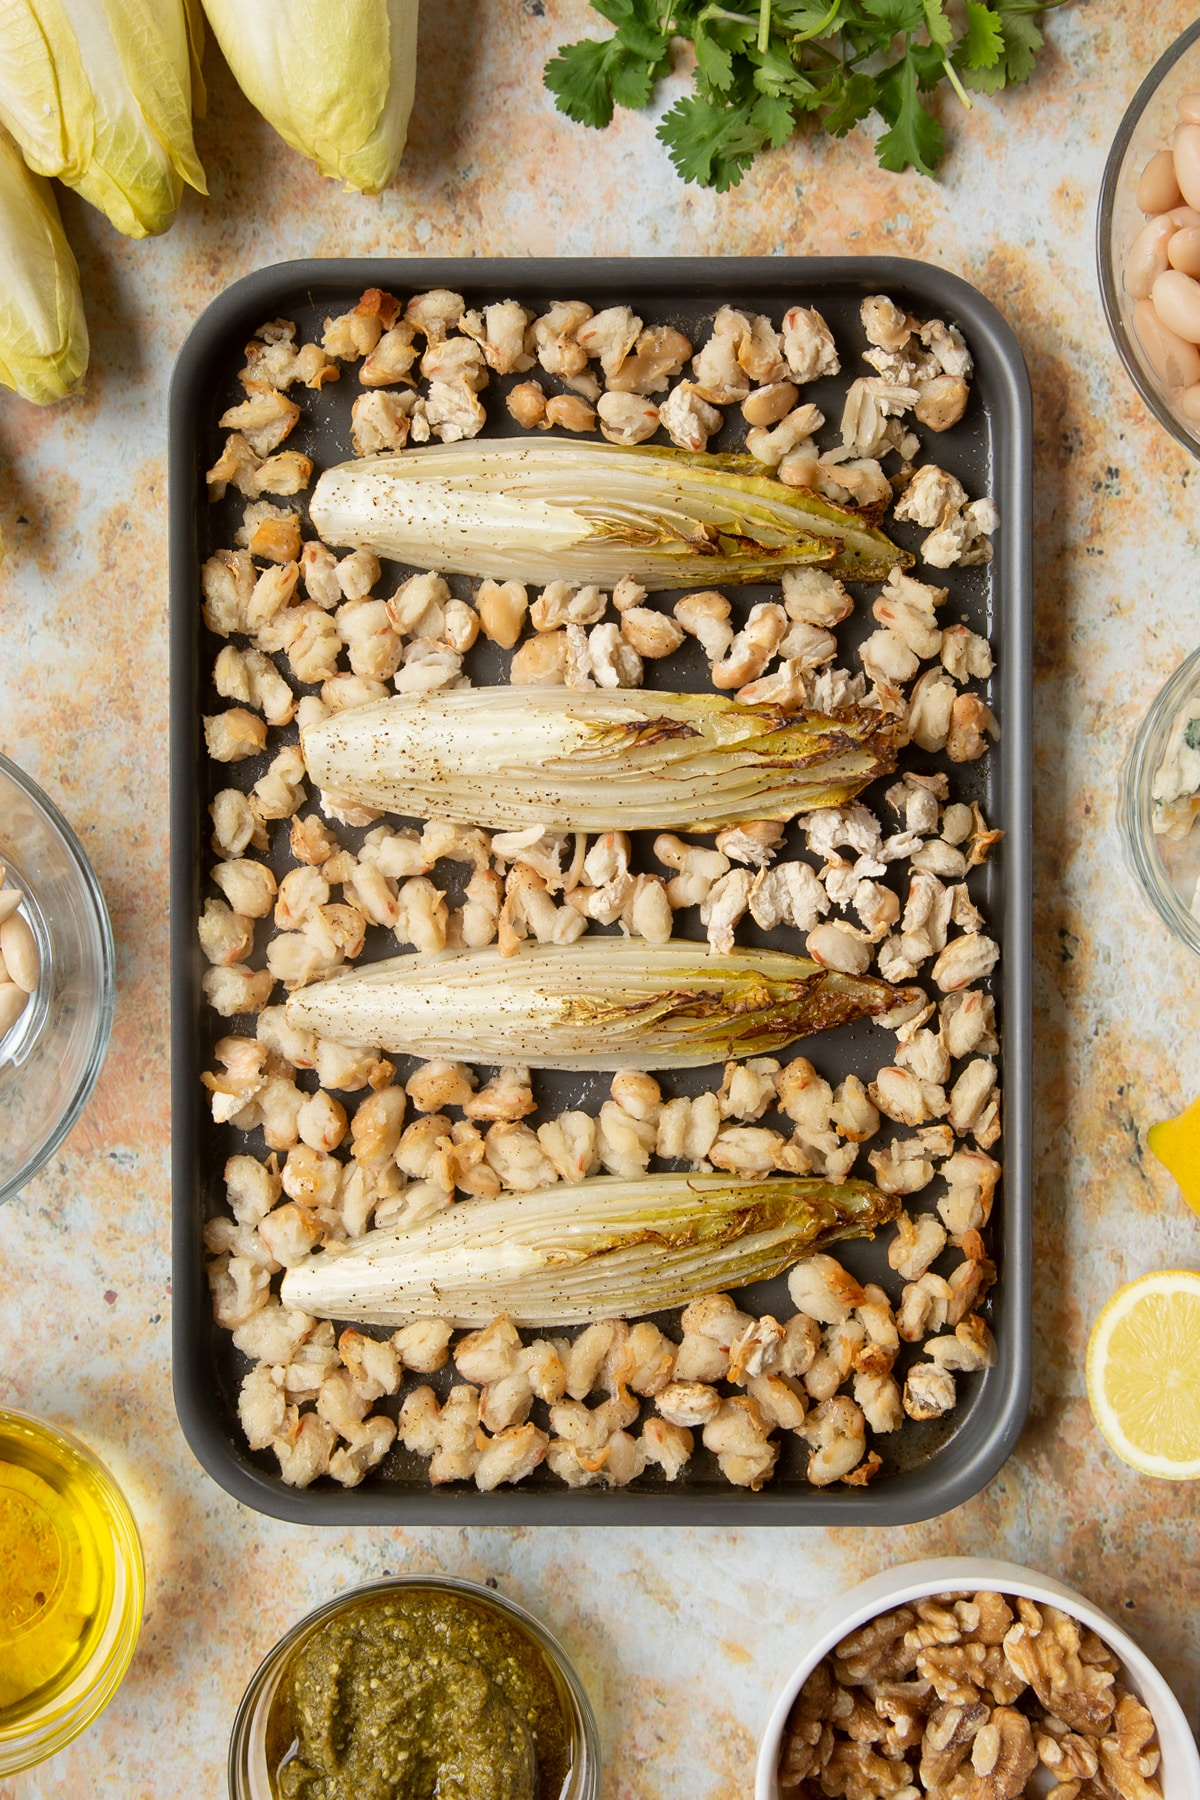 Roasted chicory and cannellini beans on a tray.